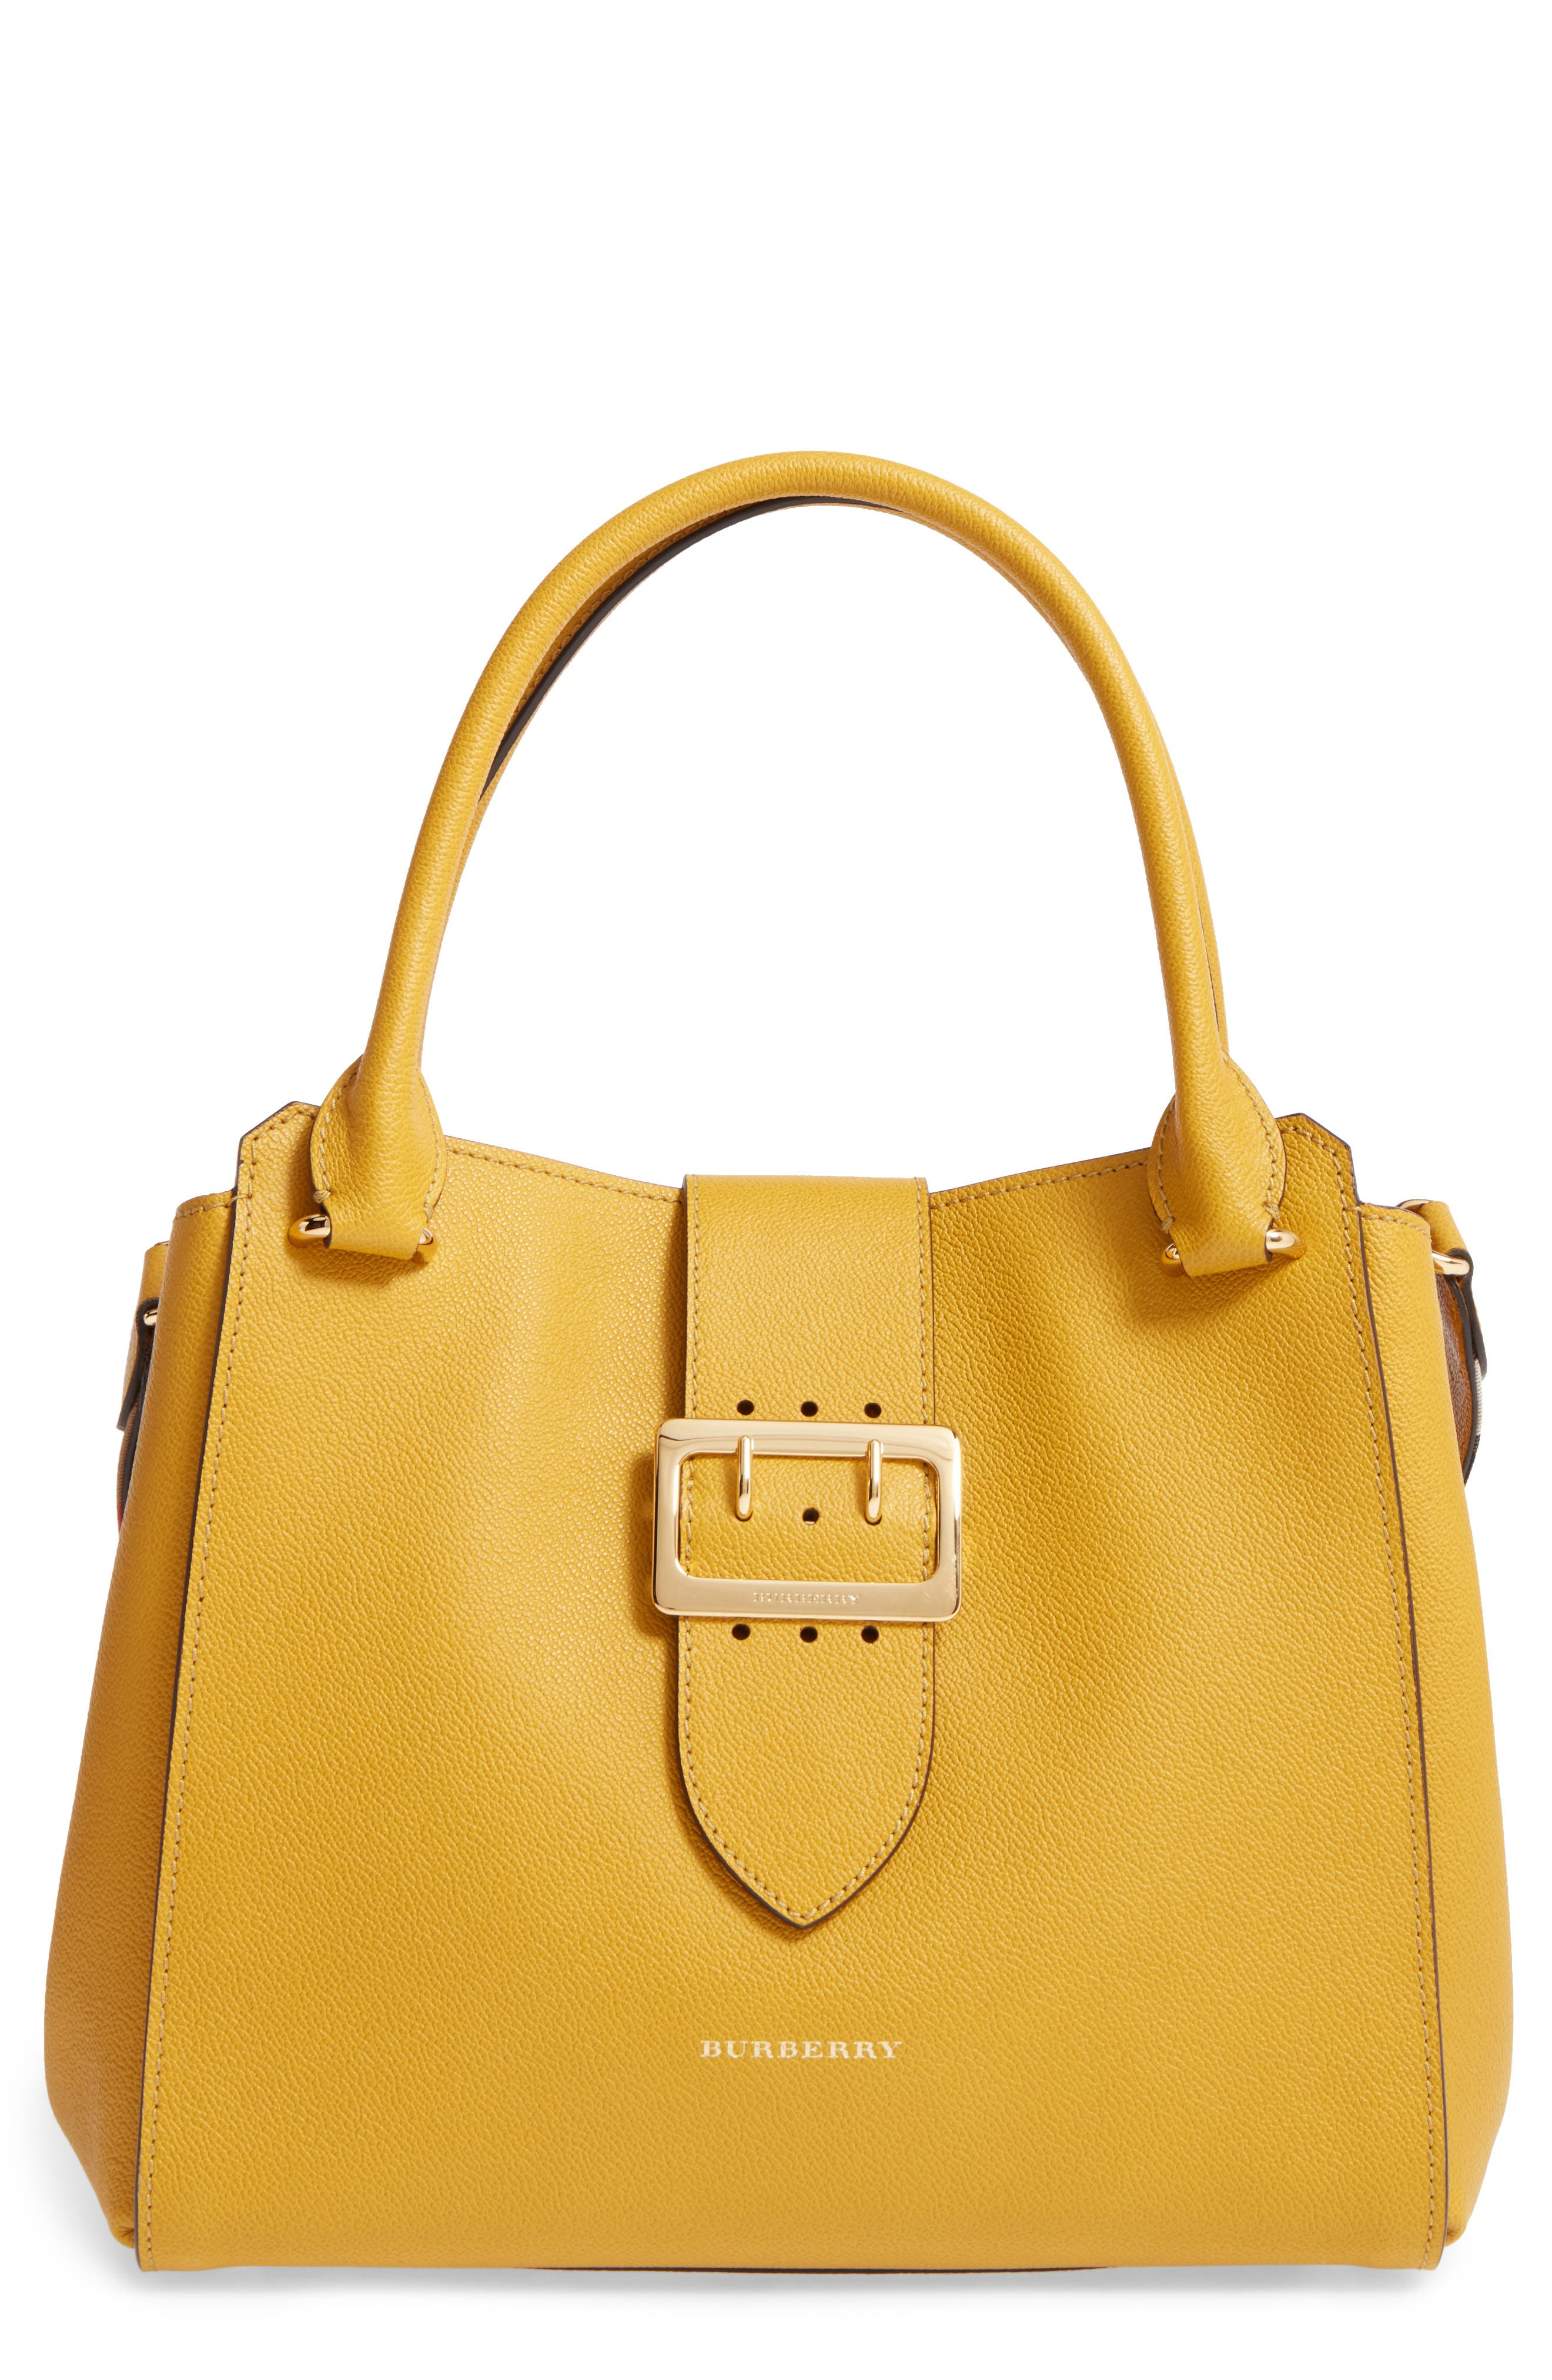 Main Image - Burberry Medium Calfskin Leather Tote